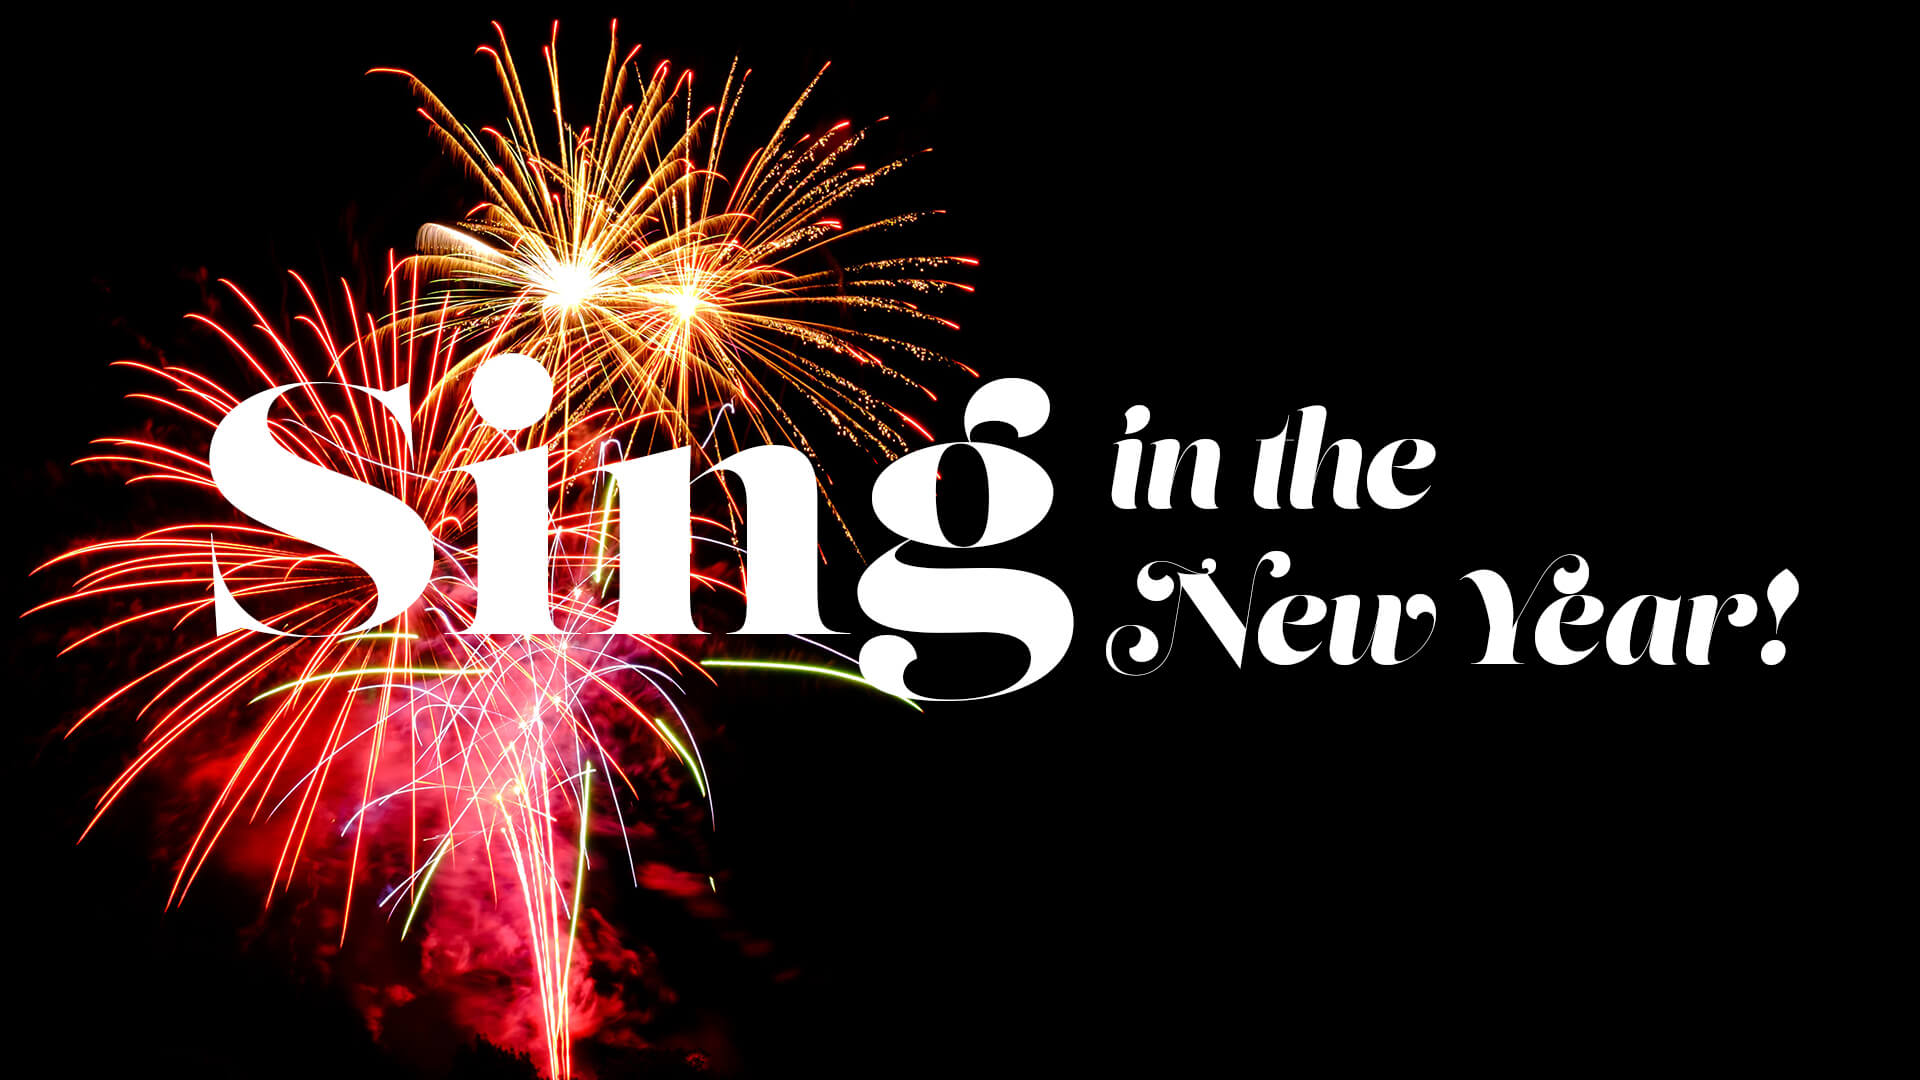 Sing in the new Year - 1920x1080.jpg